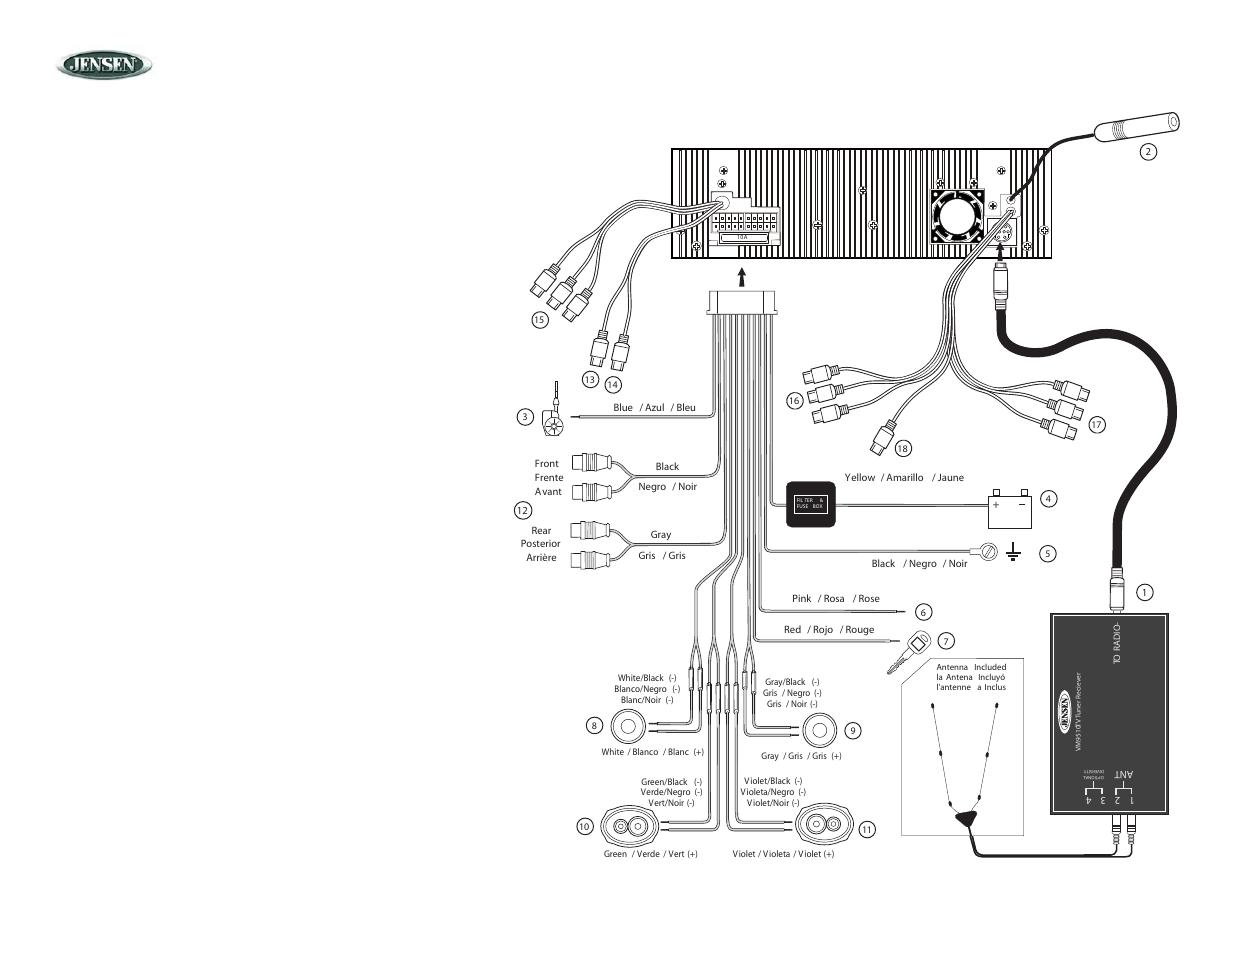 Jensen Vm9510 Wiring Harness Diagram : 36 Wiring Diagram